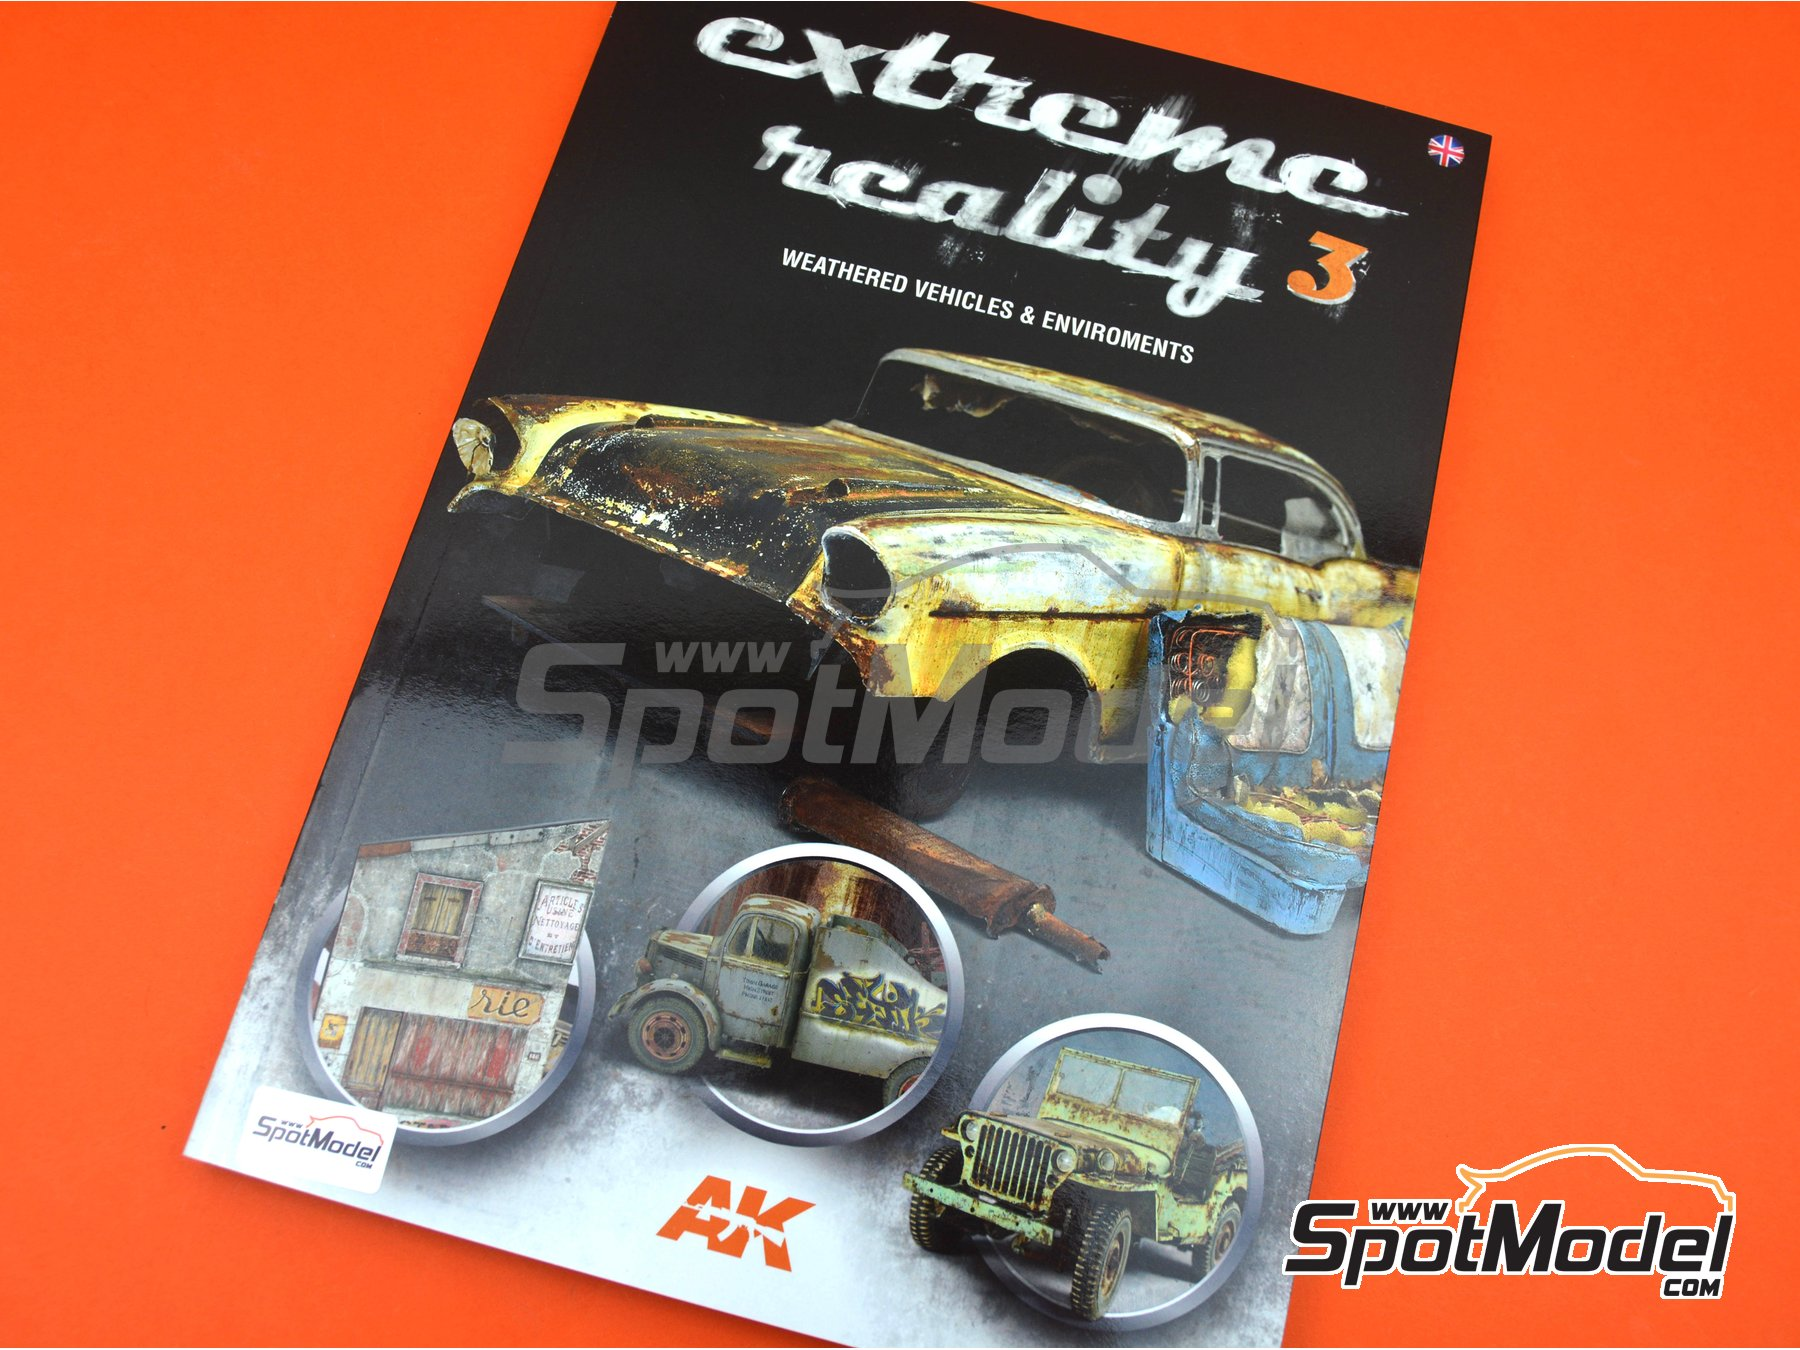 Image 7: Extreme Reality 3 -Weathered vehicles and environments | Book manufactured by AK Interactive (ref. AK-510)